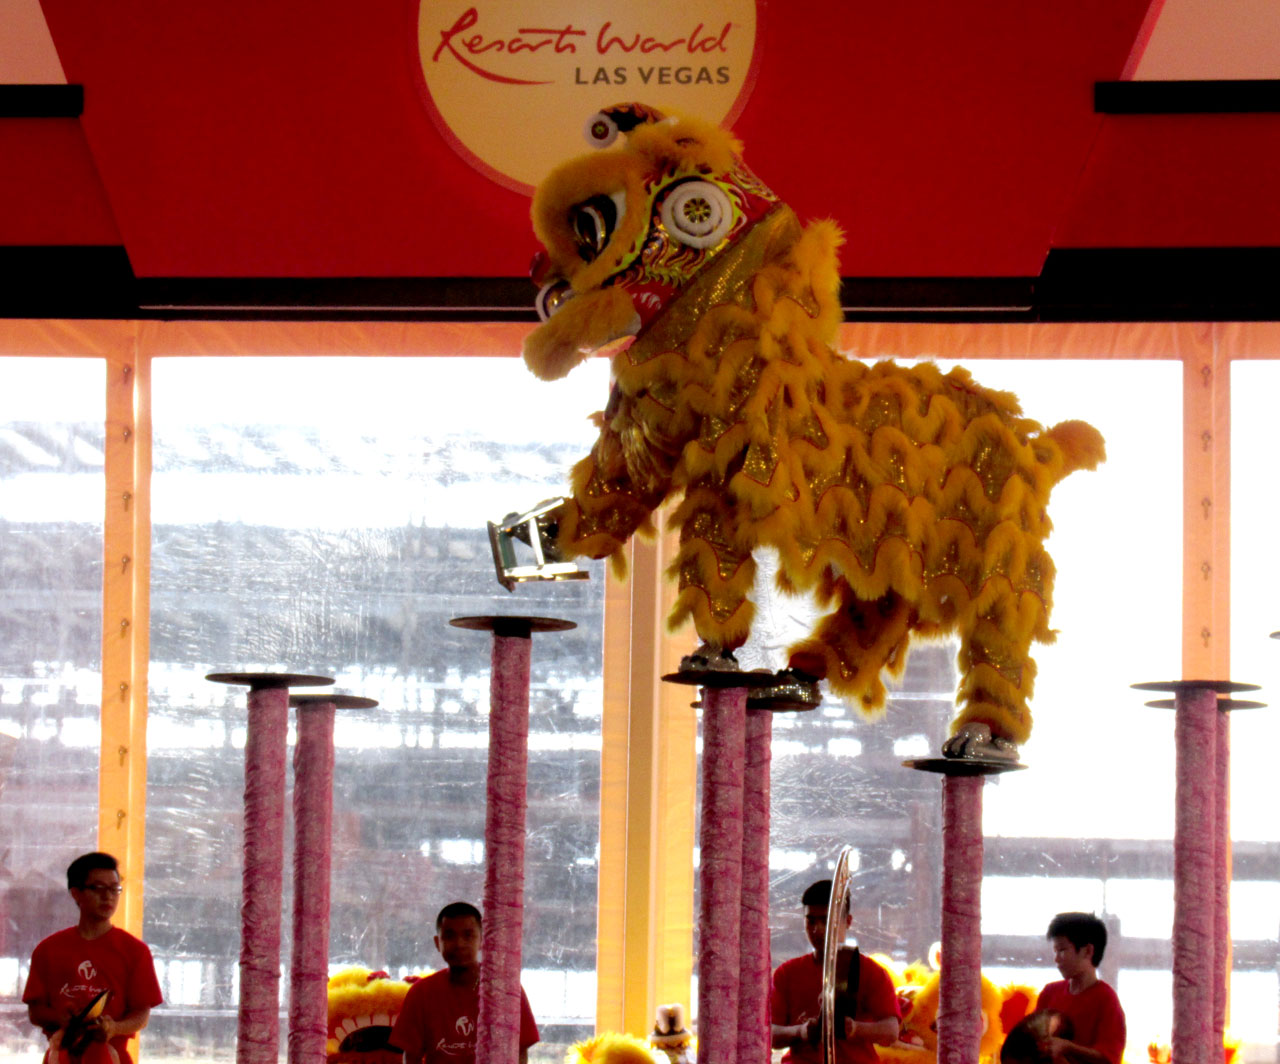 Traditional drummers and lion dancers enlivened the groundbreaking festivities